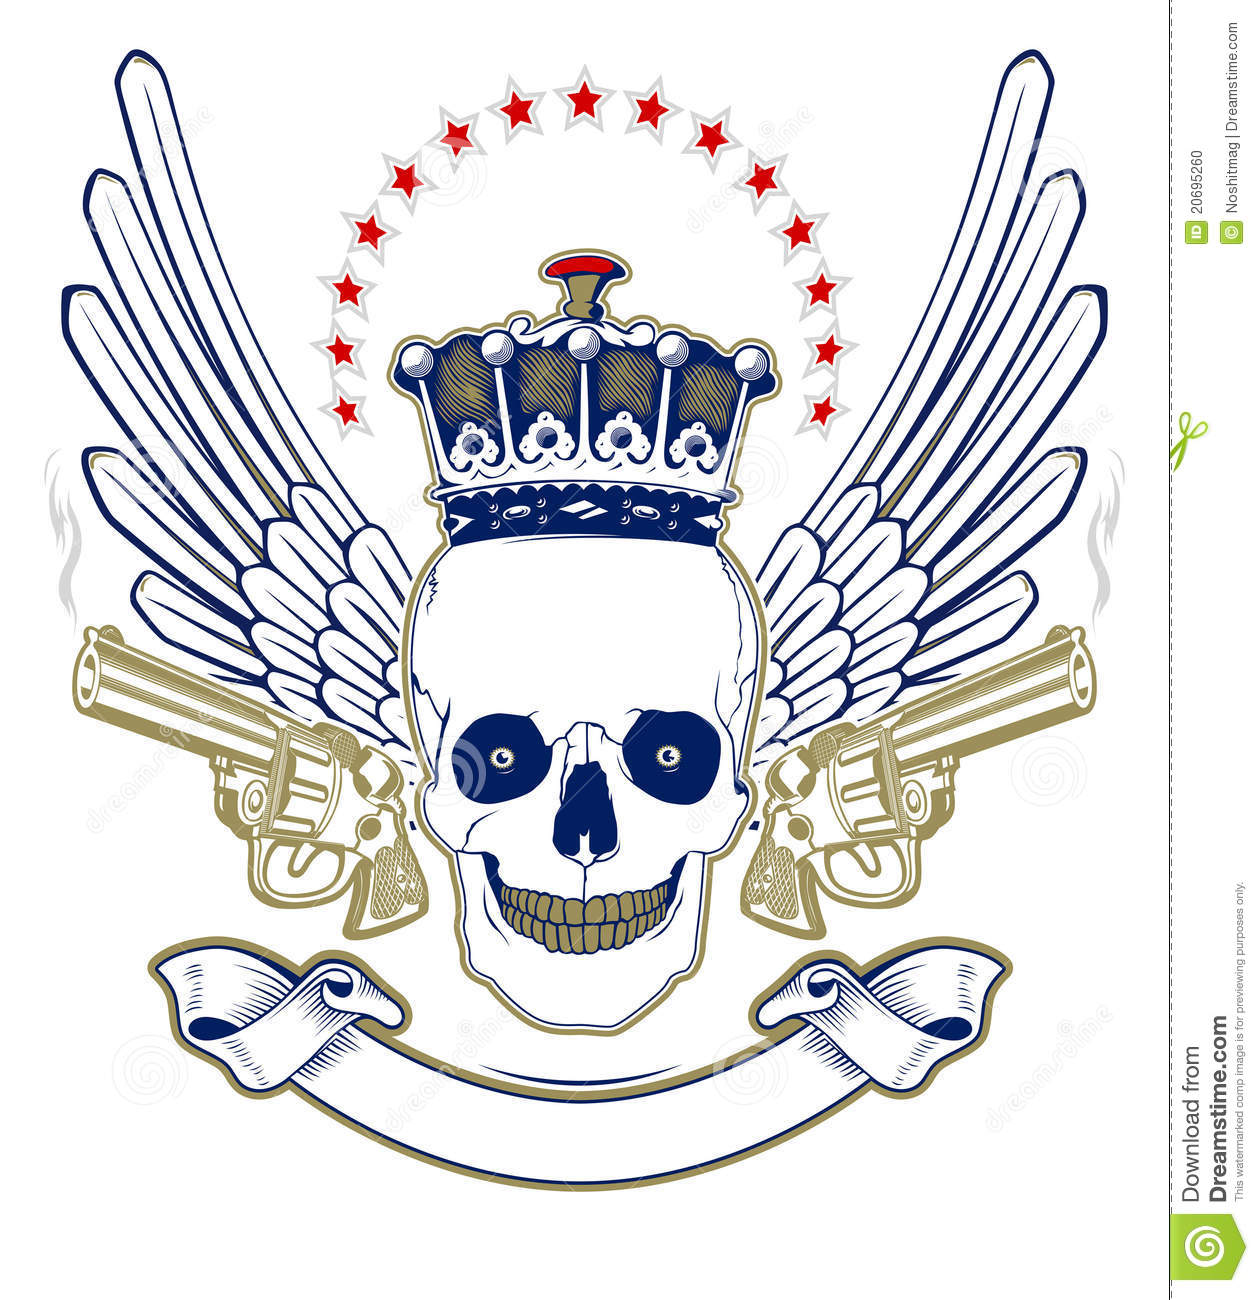 https://thumbs.dreamstime.com/z/crown-skull-emblem-20695260.jpg